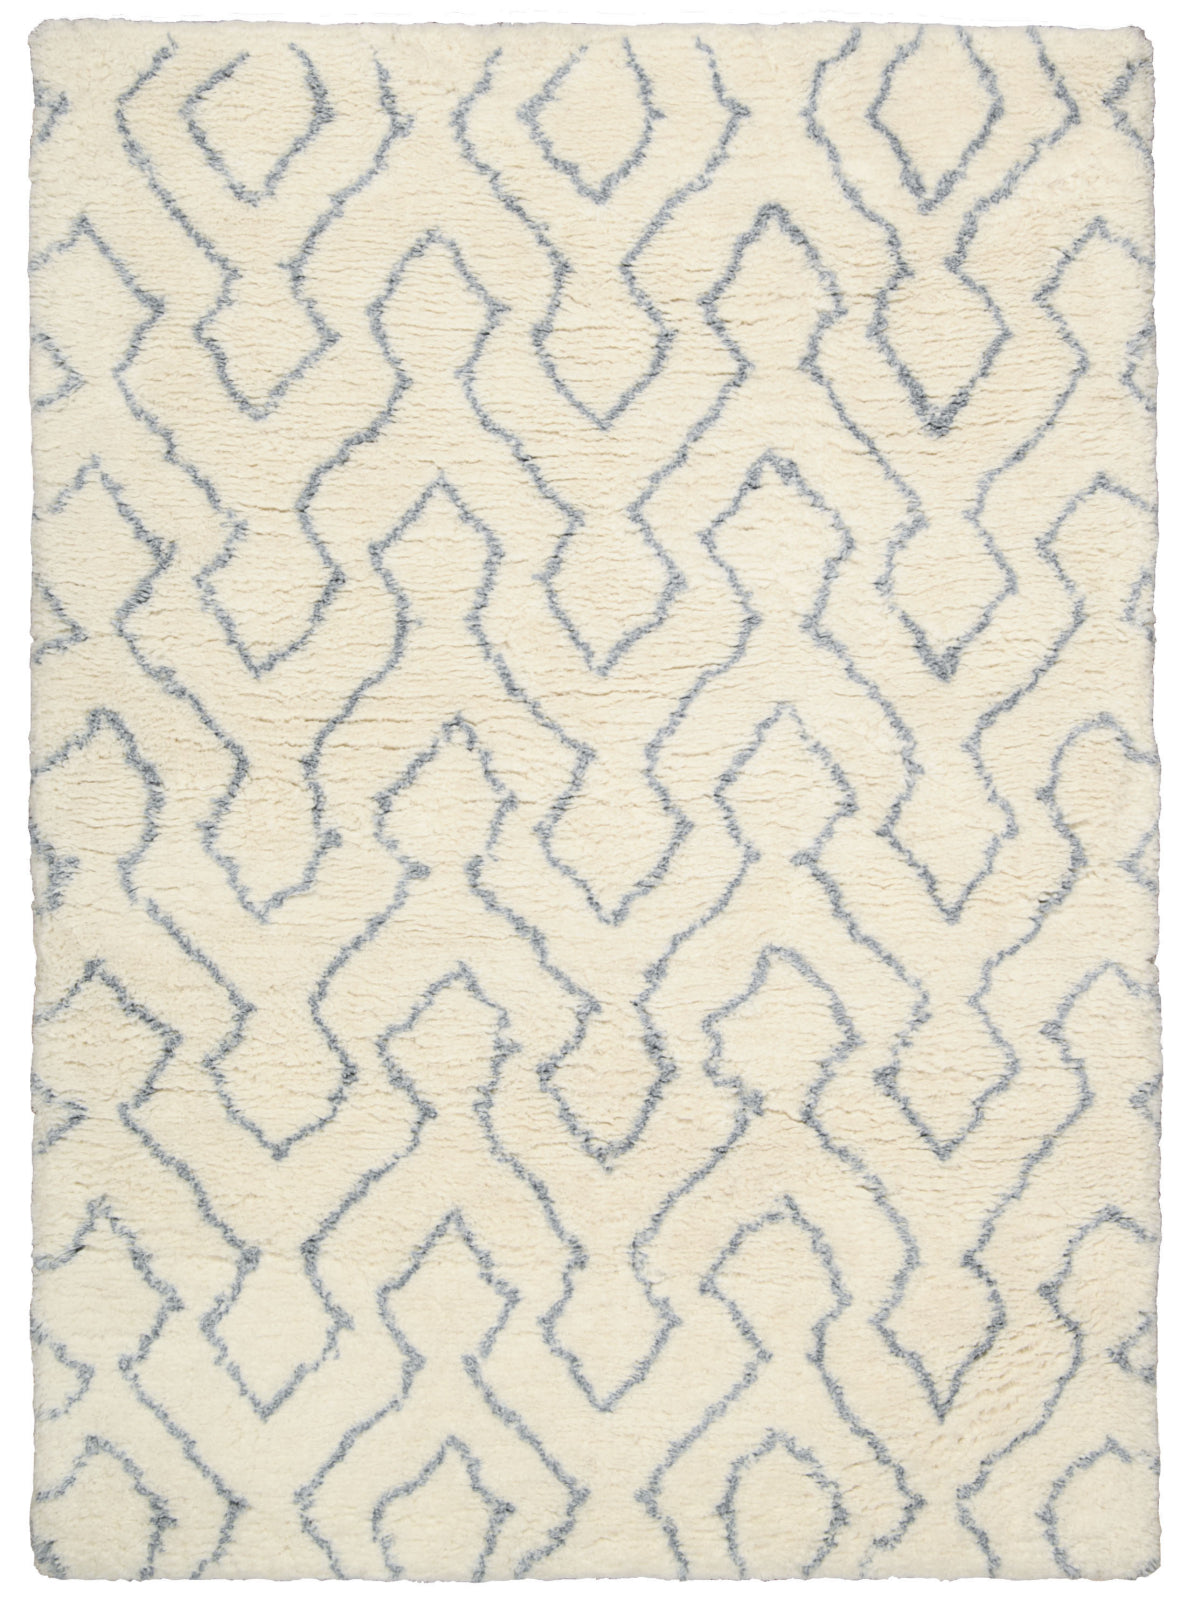 Nourison Galway GLW03 Ivory Blue Area Rug main image